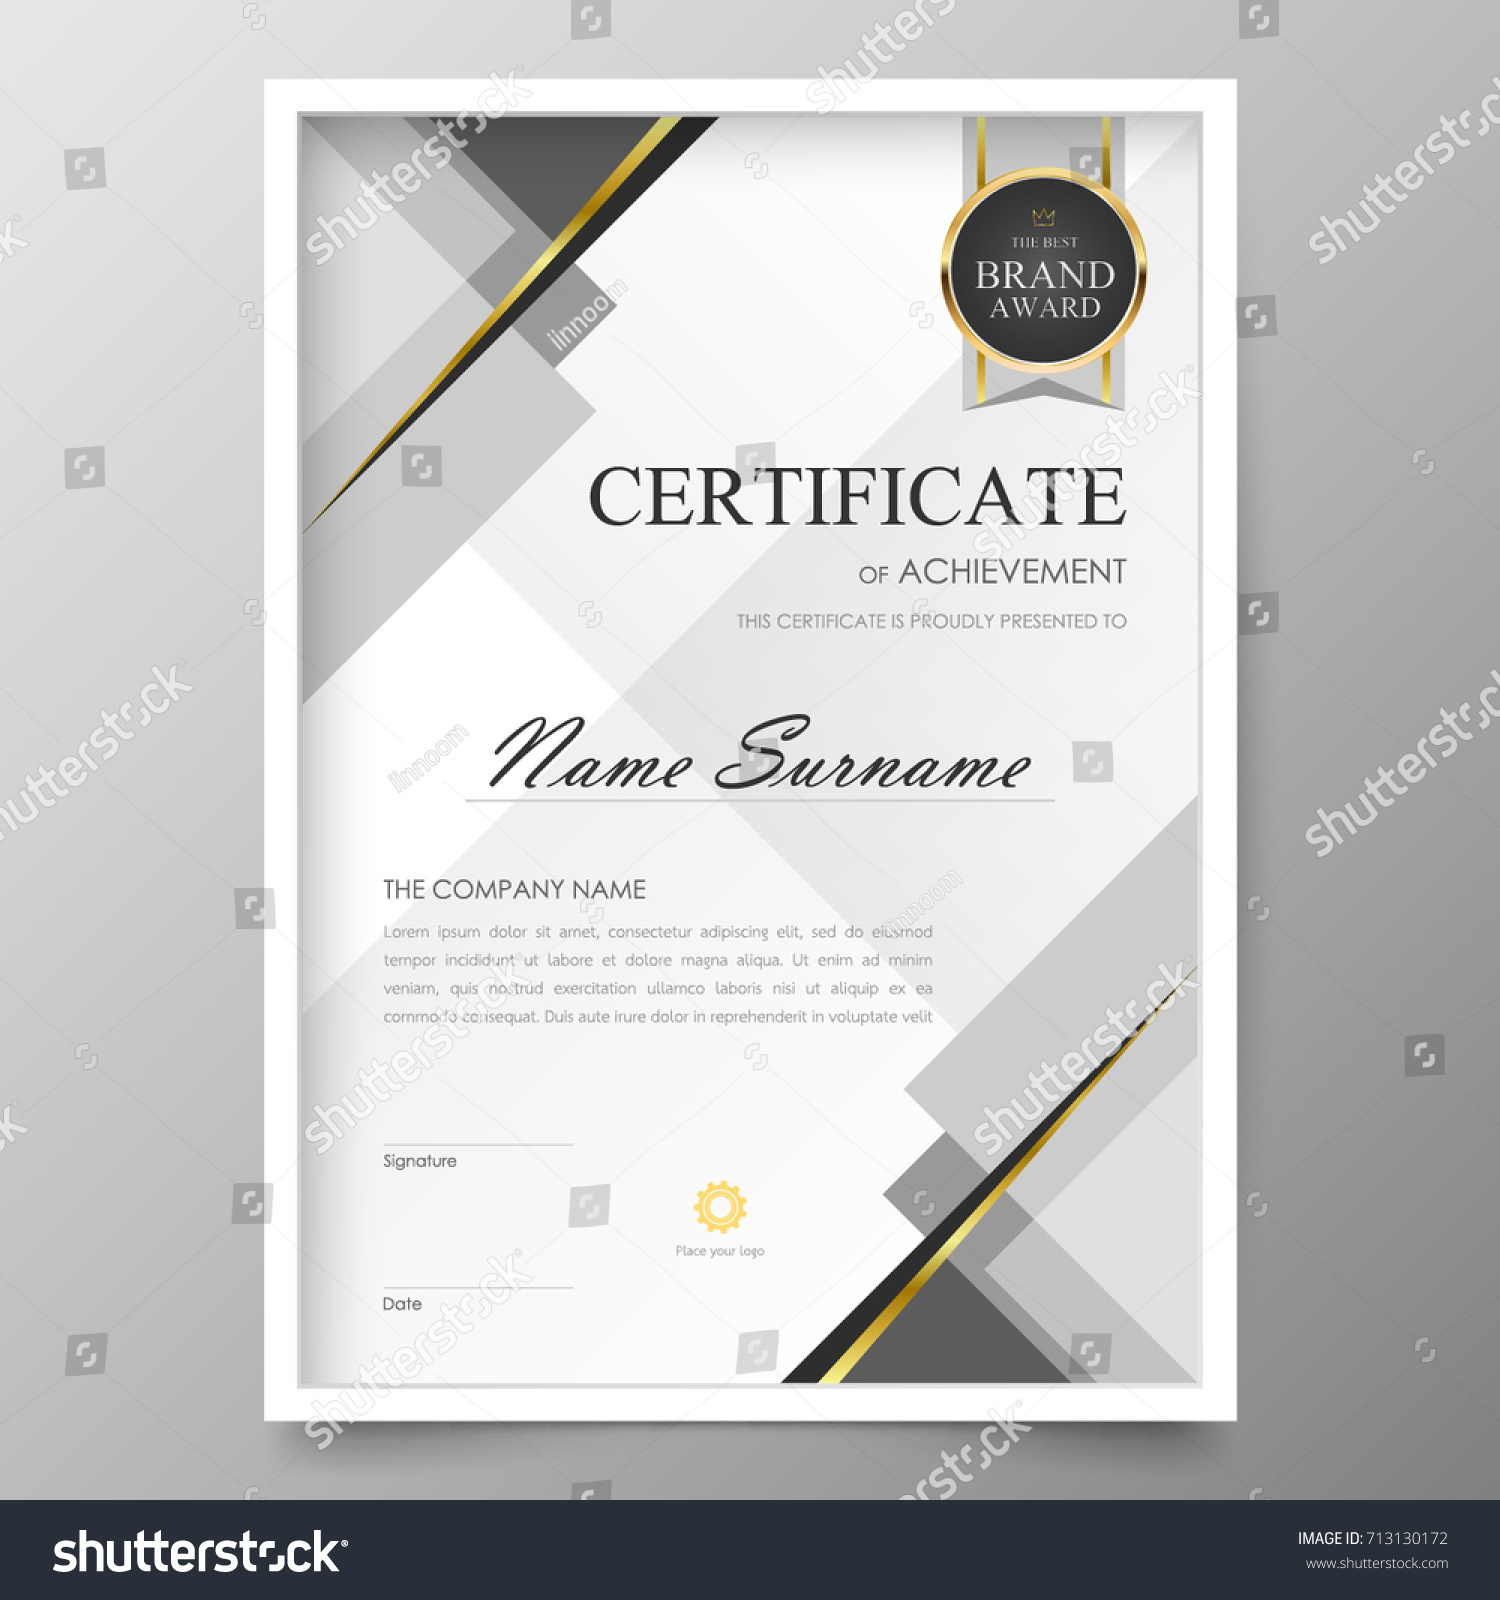 Certificate premium template awards diploma background certificate premium template awards diploma background vector modern value design and layout luxuriousver leaflet yelopaper Gallery